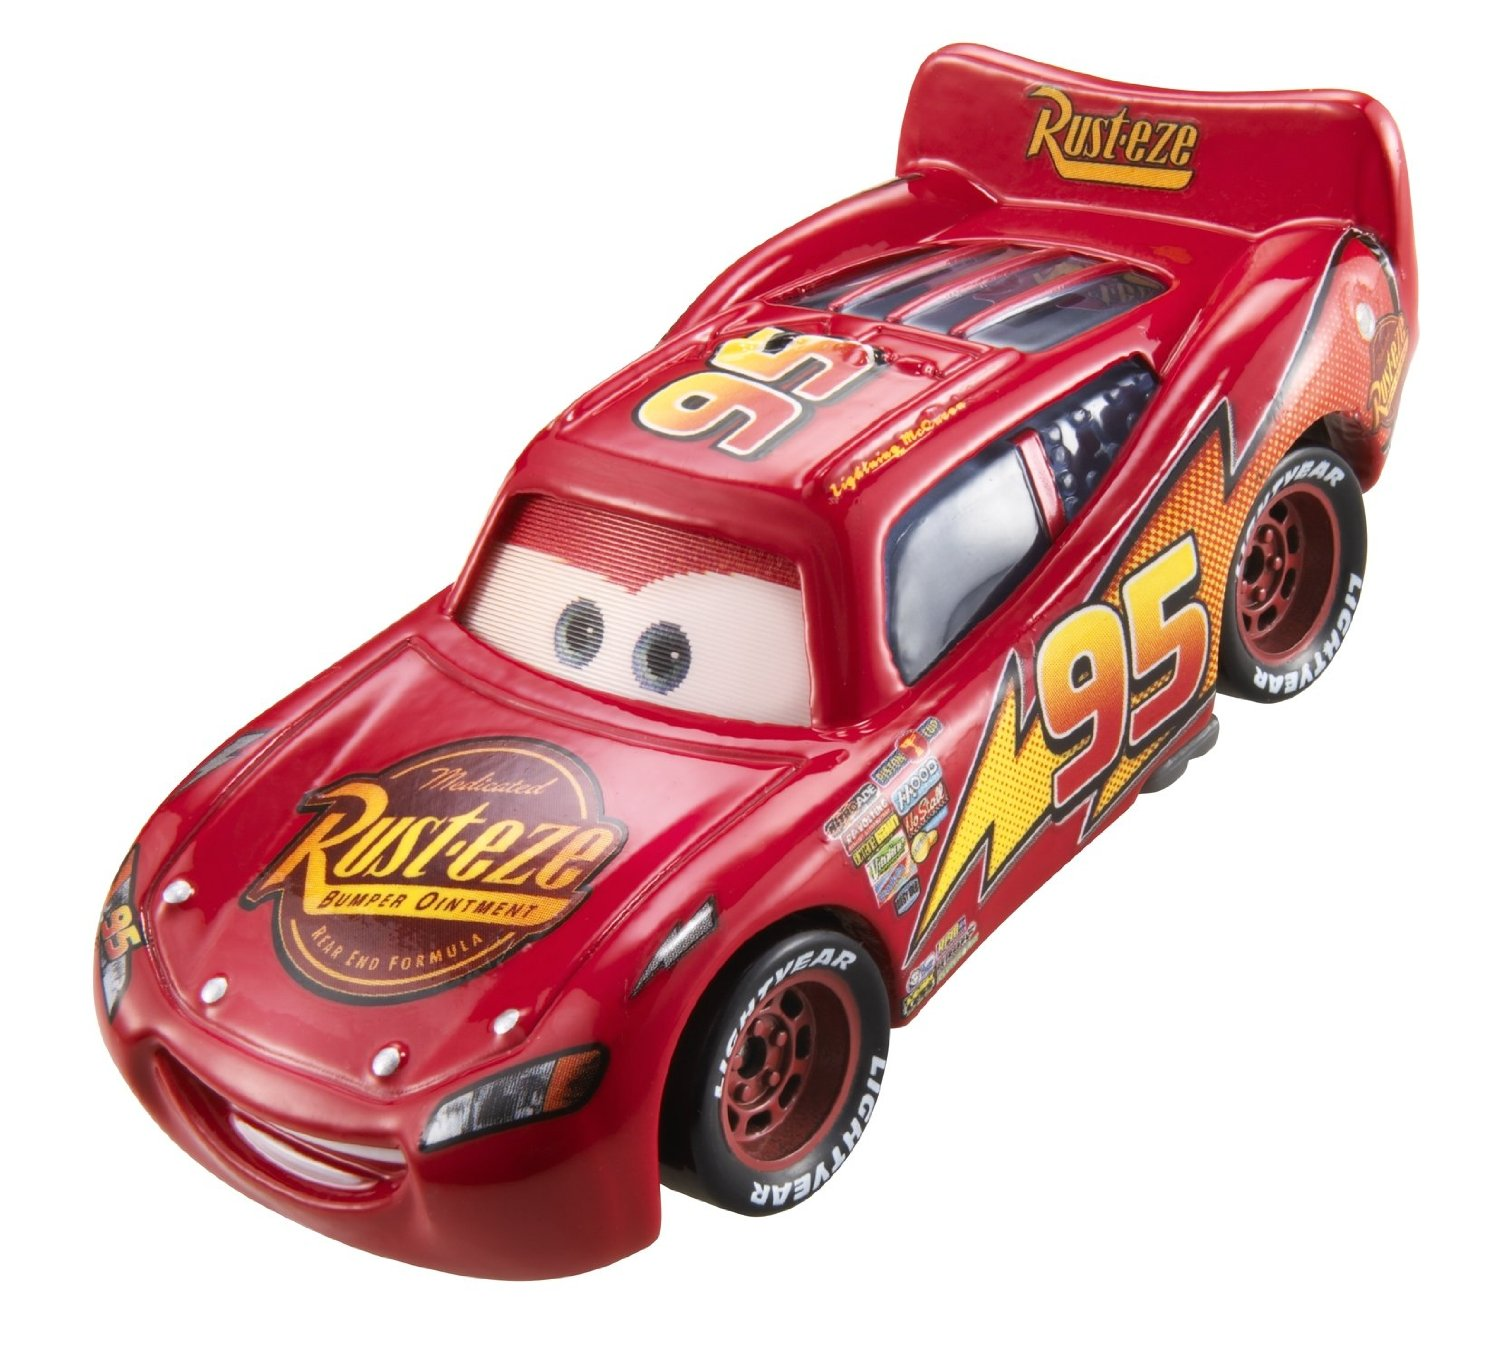 mattel r1345 voiture rouge cars flash mcqueen yeux lenticulaire. Black Bedroom Furniture Sets. Home Design Ideas